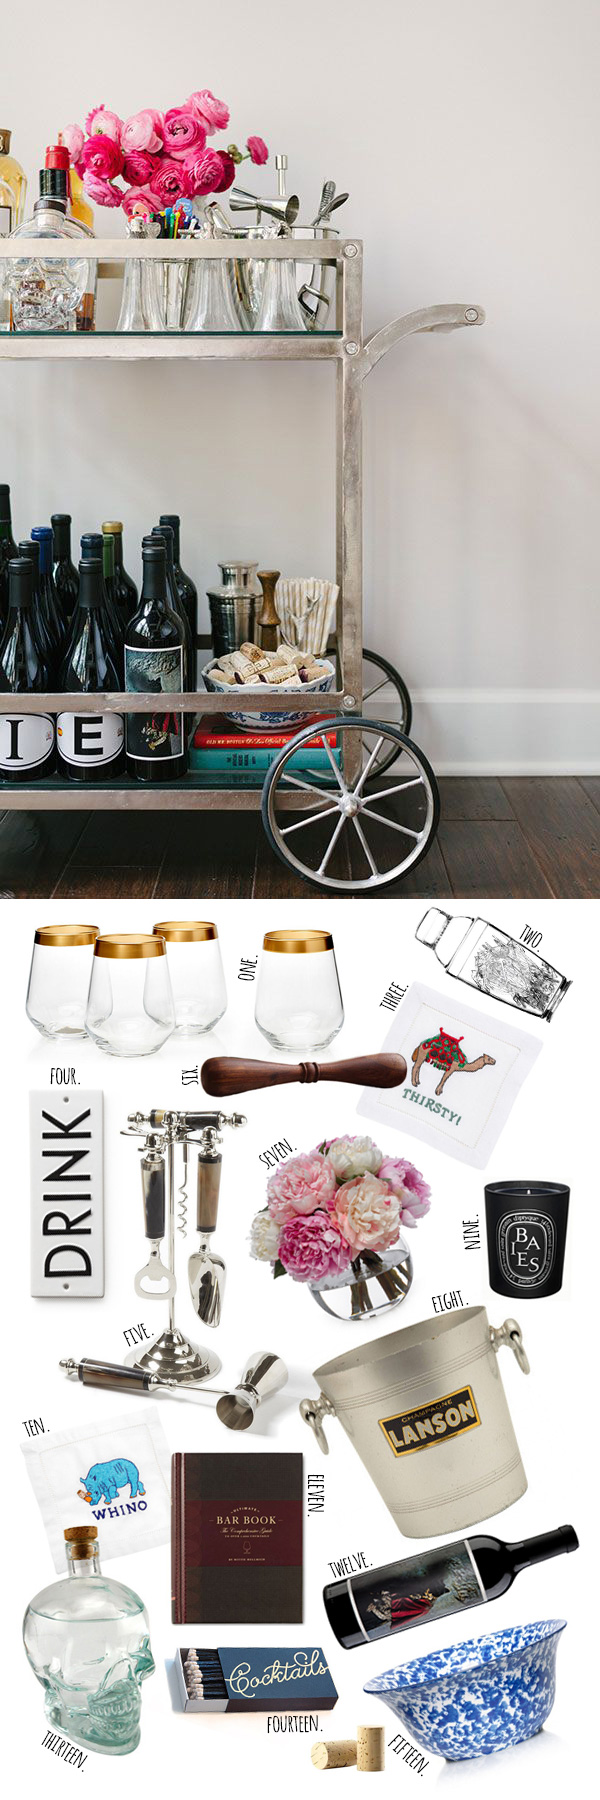 Top 15 Bar Cart Essentials